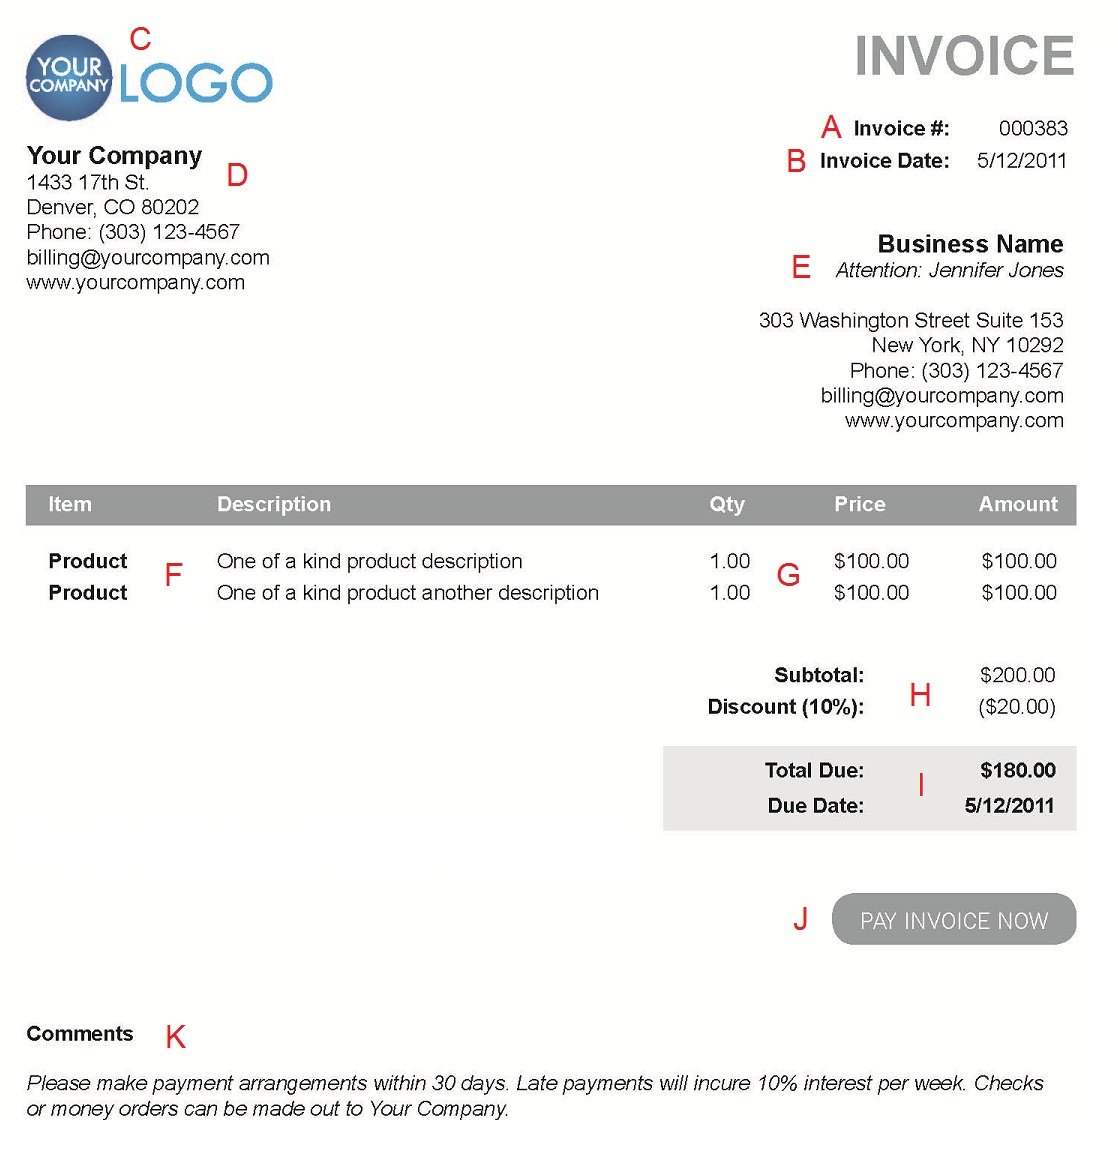 Pigbrotherus  Stunning The  Different Sections Of An Electronic Payment Invoice With Handsome A  With Charming Invoice Pdf Also Ebay Invoice Fee In Addition Make An Invoice And Car Invoice Price As Well As Blank Invoice Template Pdf Additionally Freelance Invoice Template From Paysimplecom With Pigbrotherus  Handsome The  Different Sections Of An Electronic Payment Invoice With Charming A  And Stunning Invoice Pdf Also Ebay Invoice Fee In Addition Make An Invoice From Paysimplecom